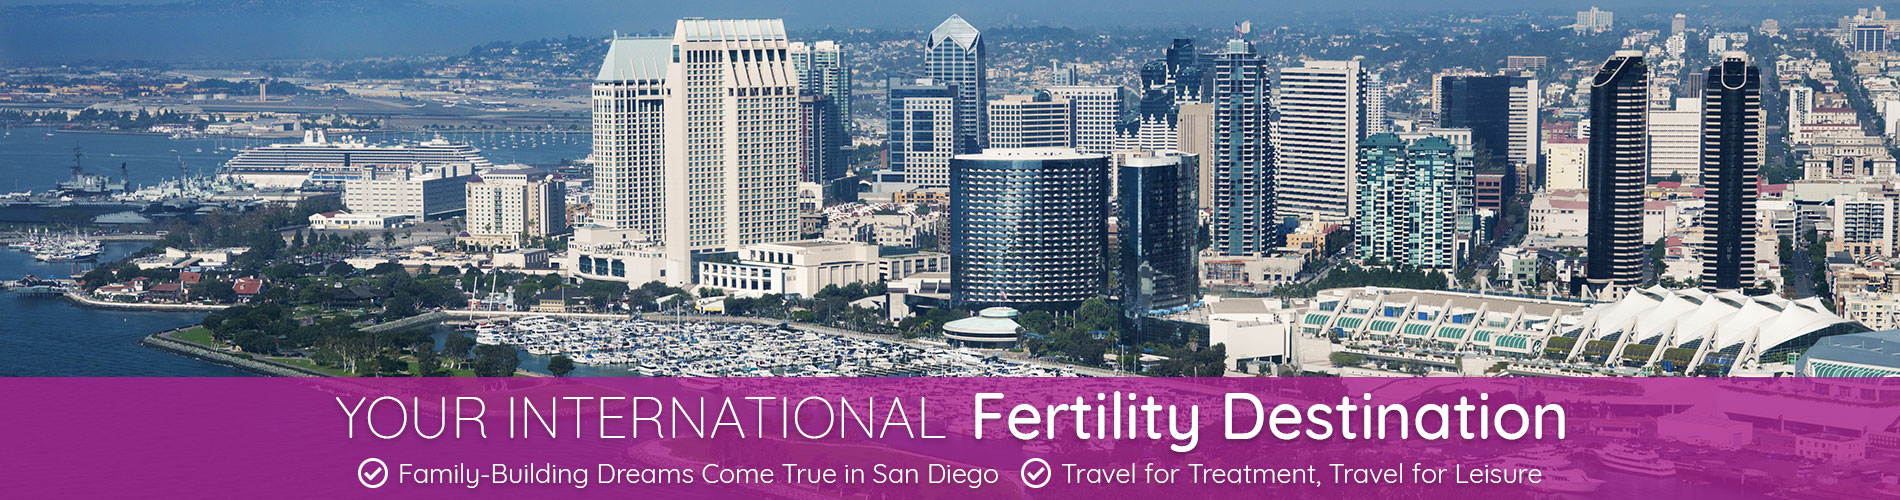 Your International Fertility Destination - Family-Building Dreams Come True in San Diego, Travel for Treatment, Travel for Leisure